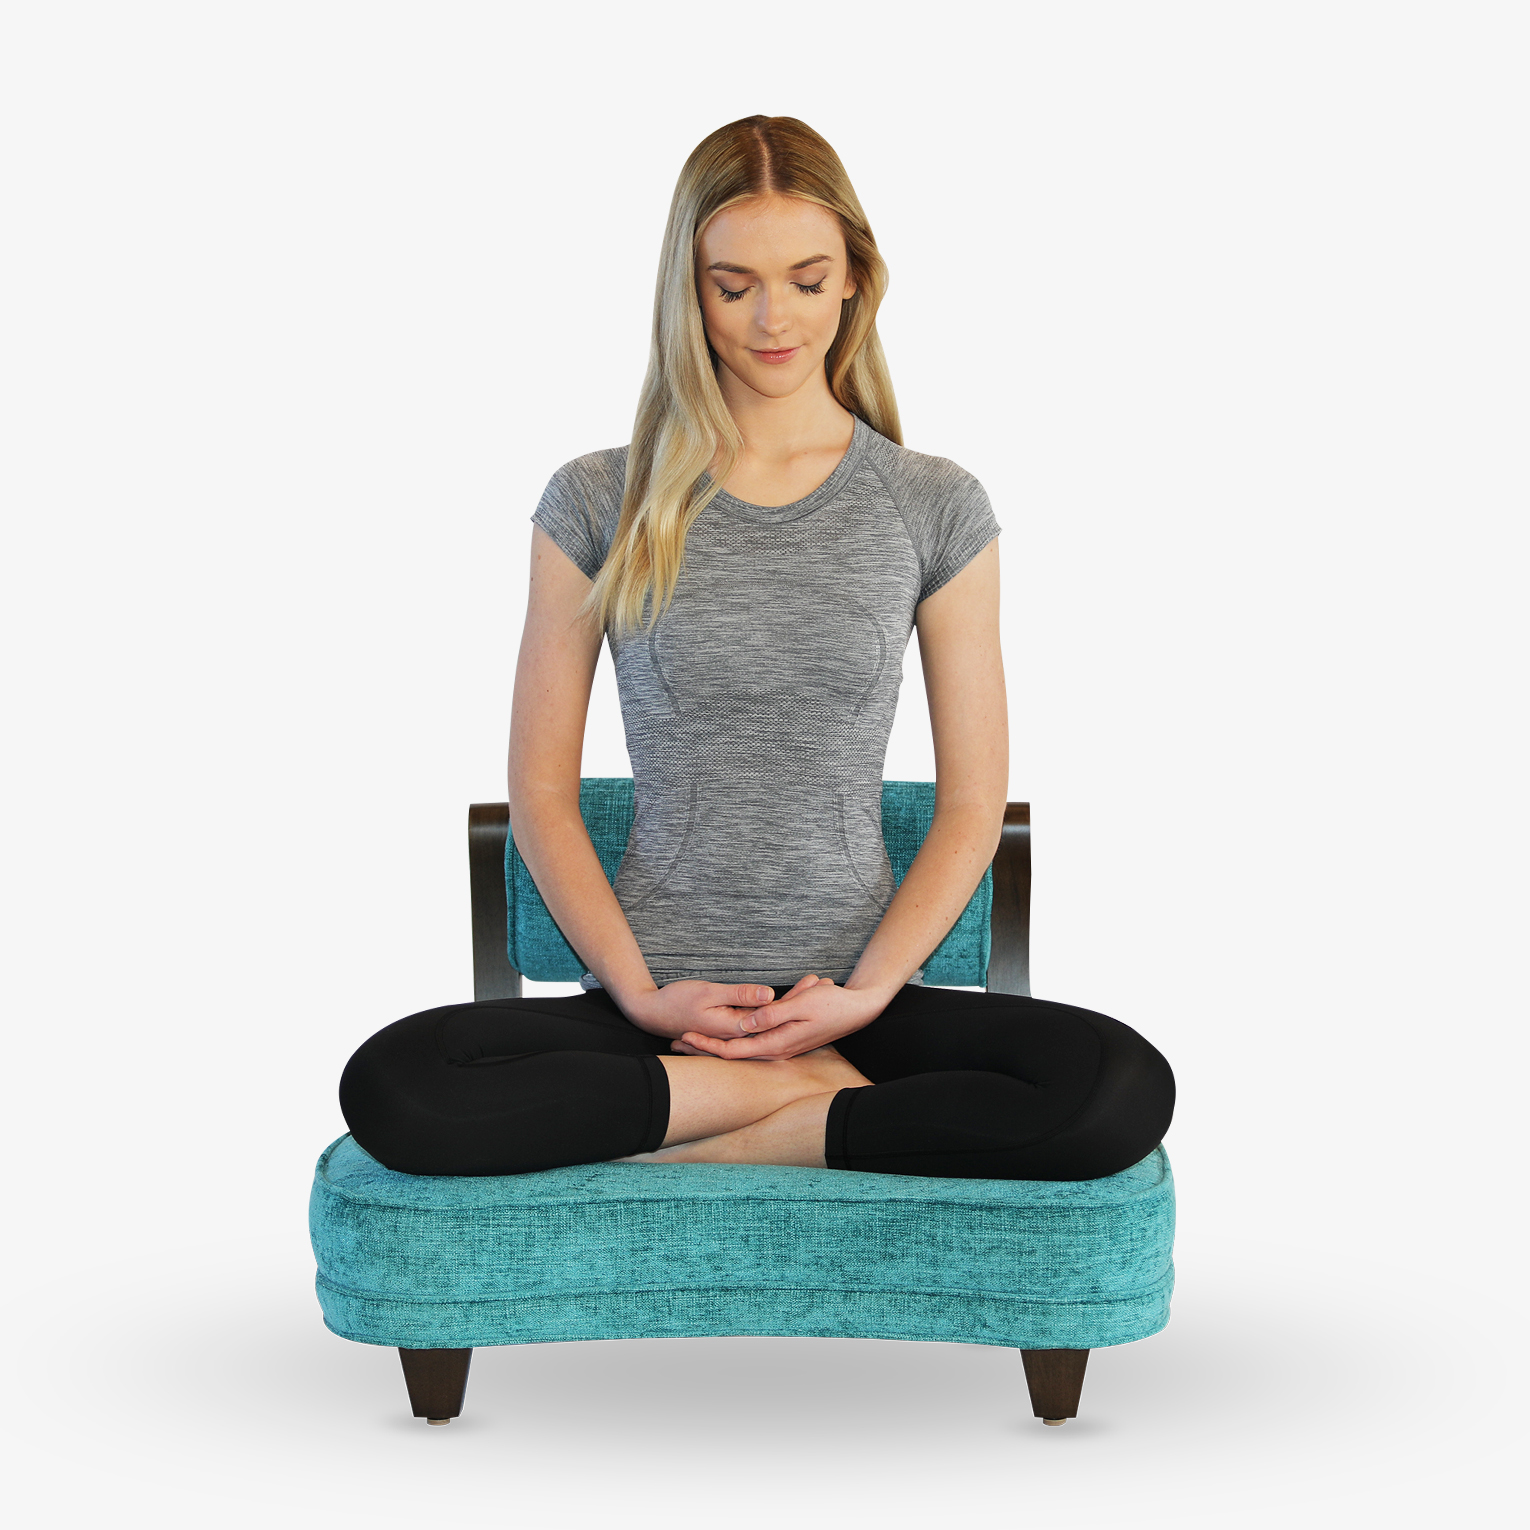 A woman meditating in The Rama Meditation Chair in the full lotus pose.